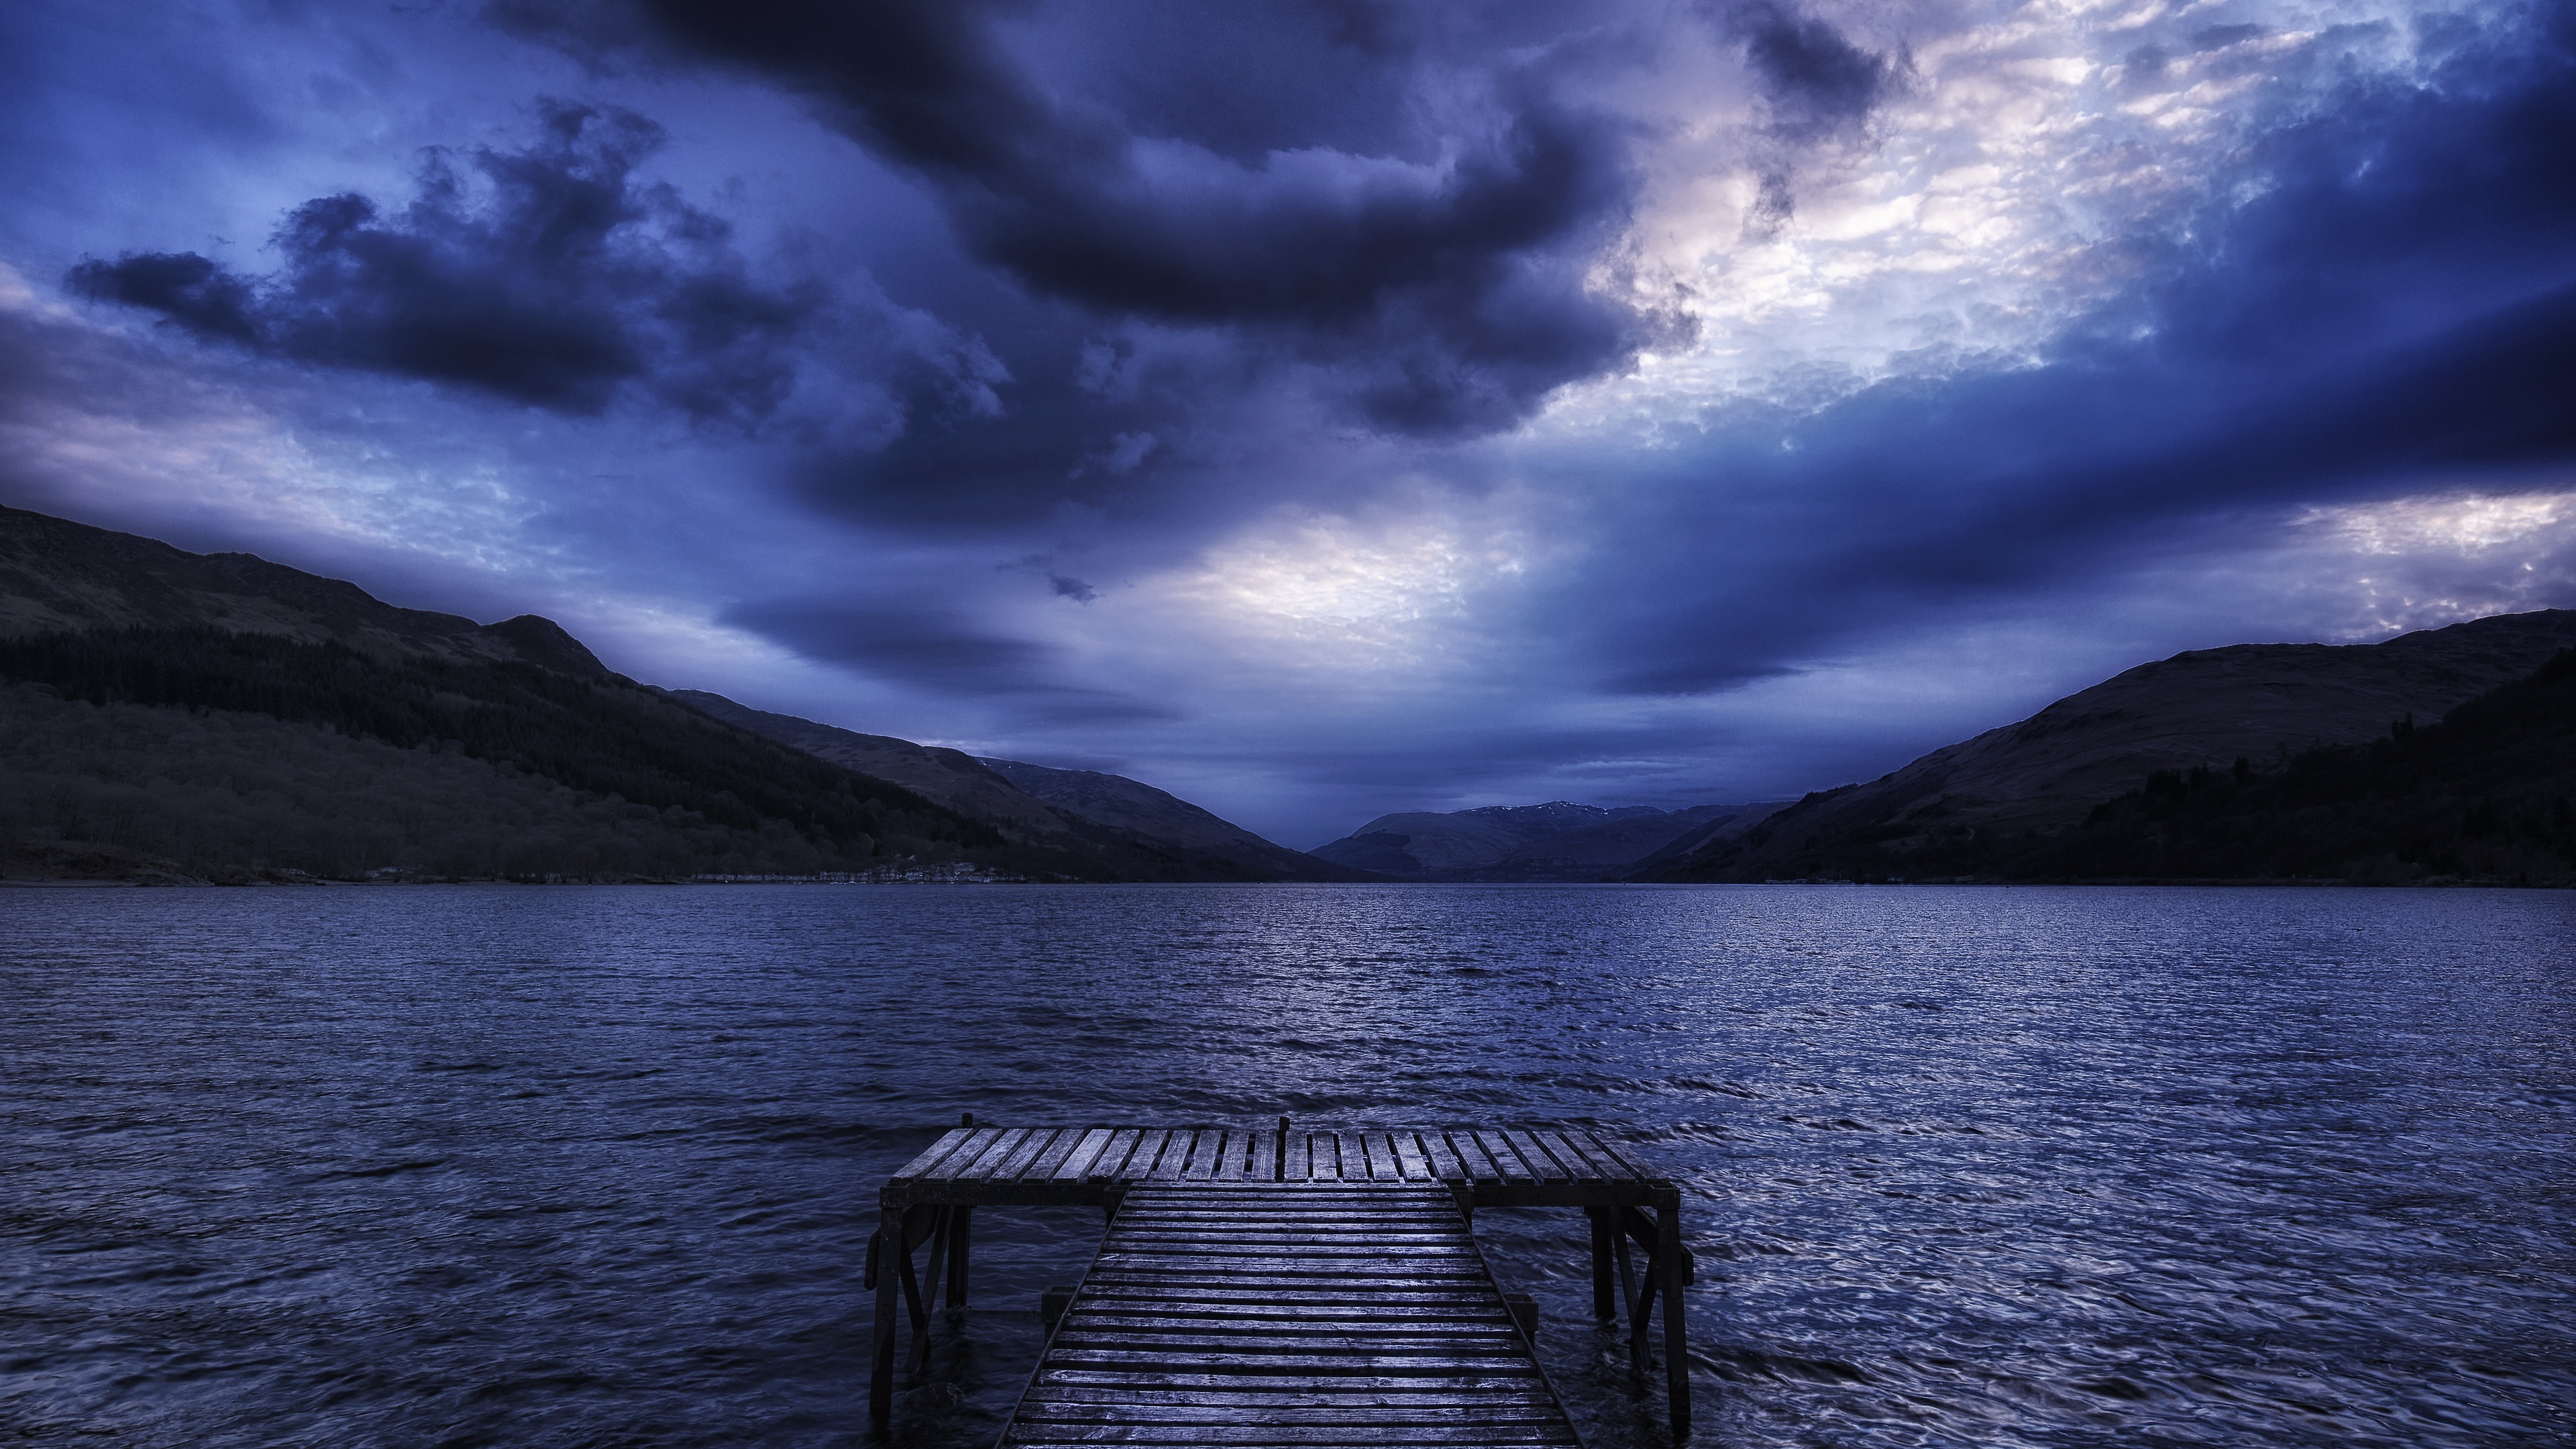 Stormy day wallpaper